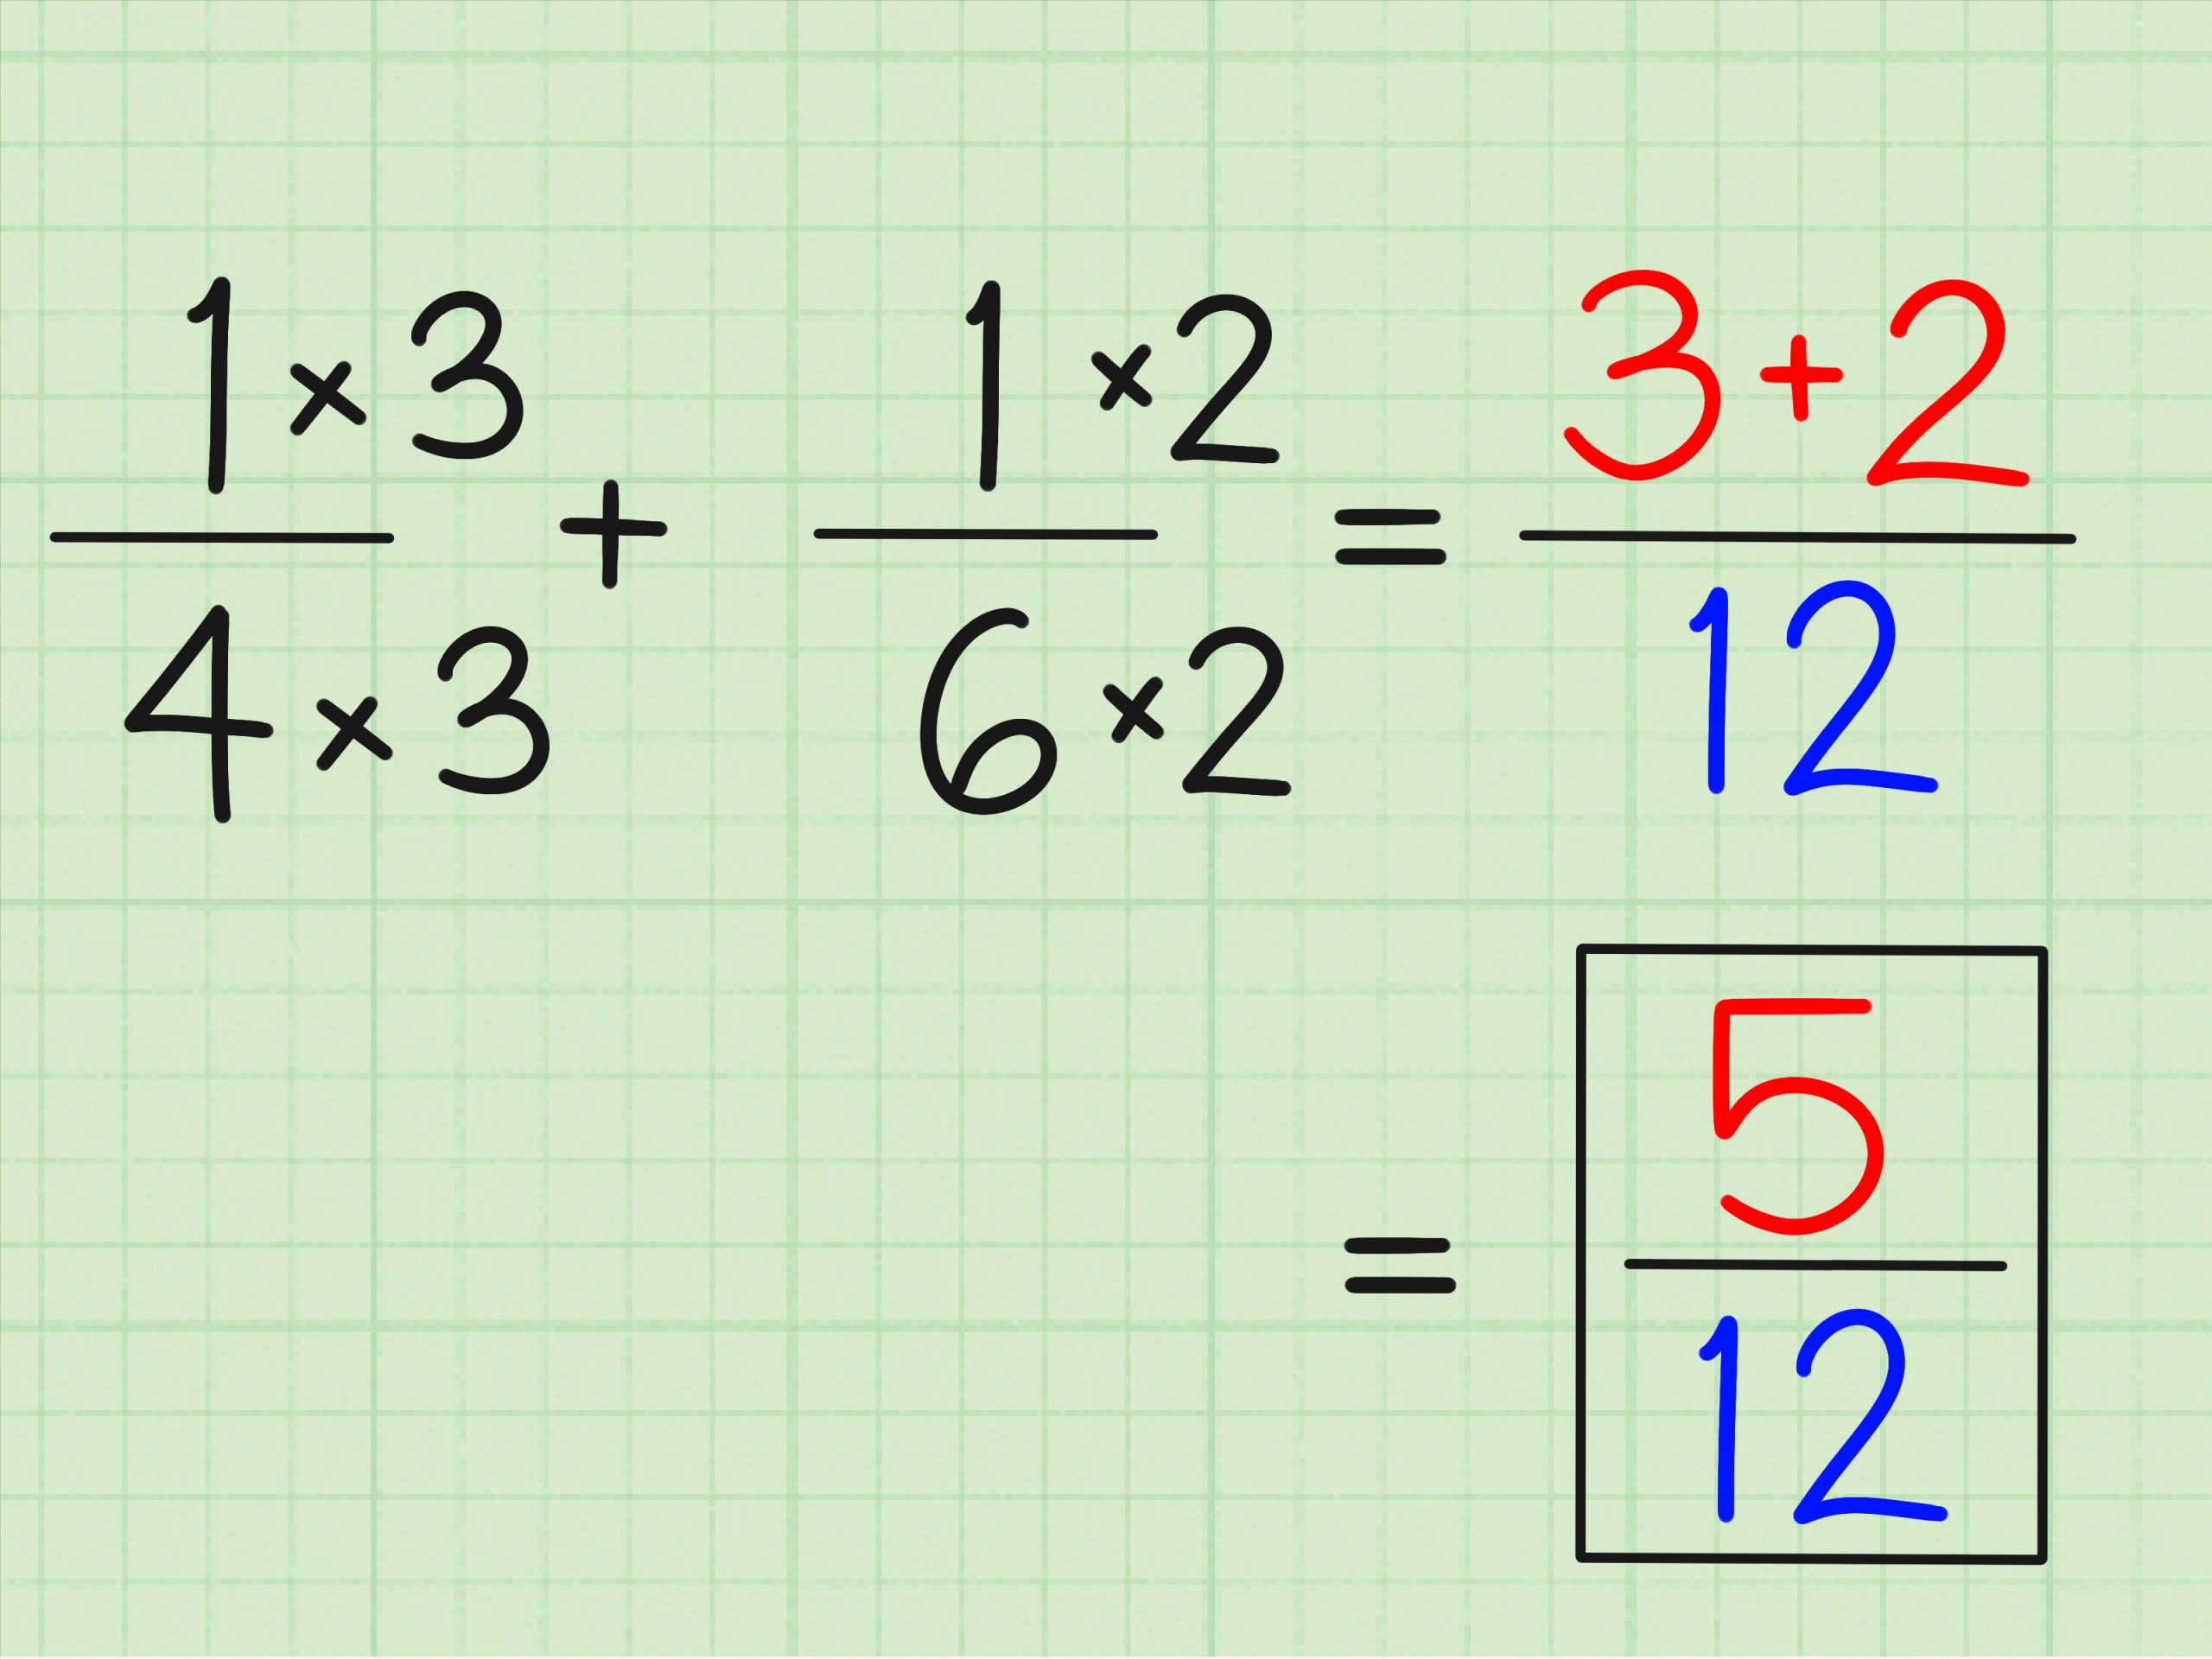 simplest form 2/4  4 Ways to Solve Fraction Questions in Math - wikiHow - simplest form 2/4